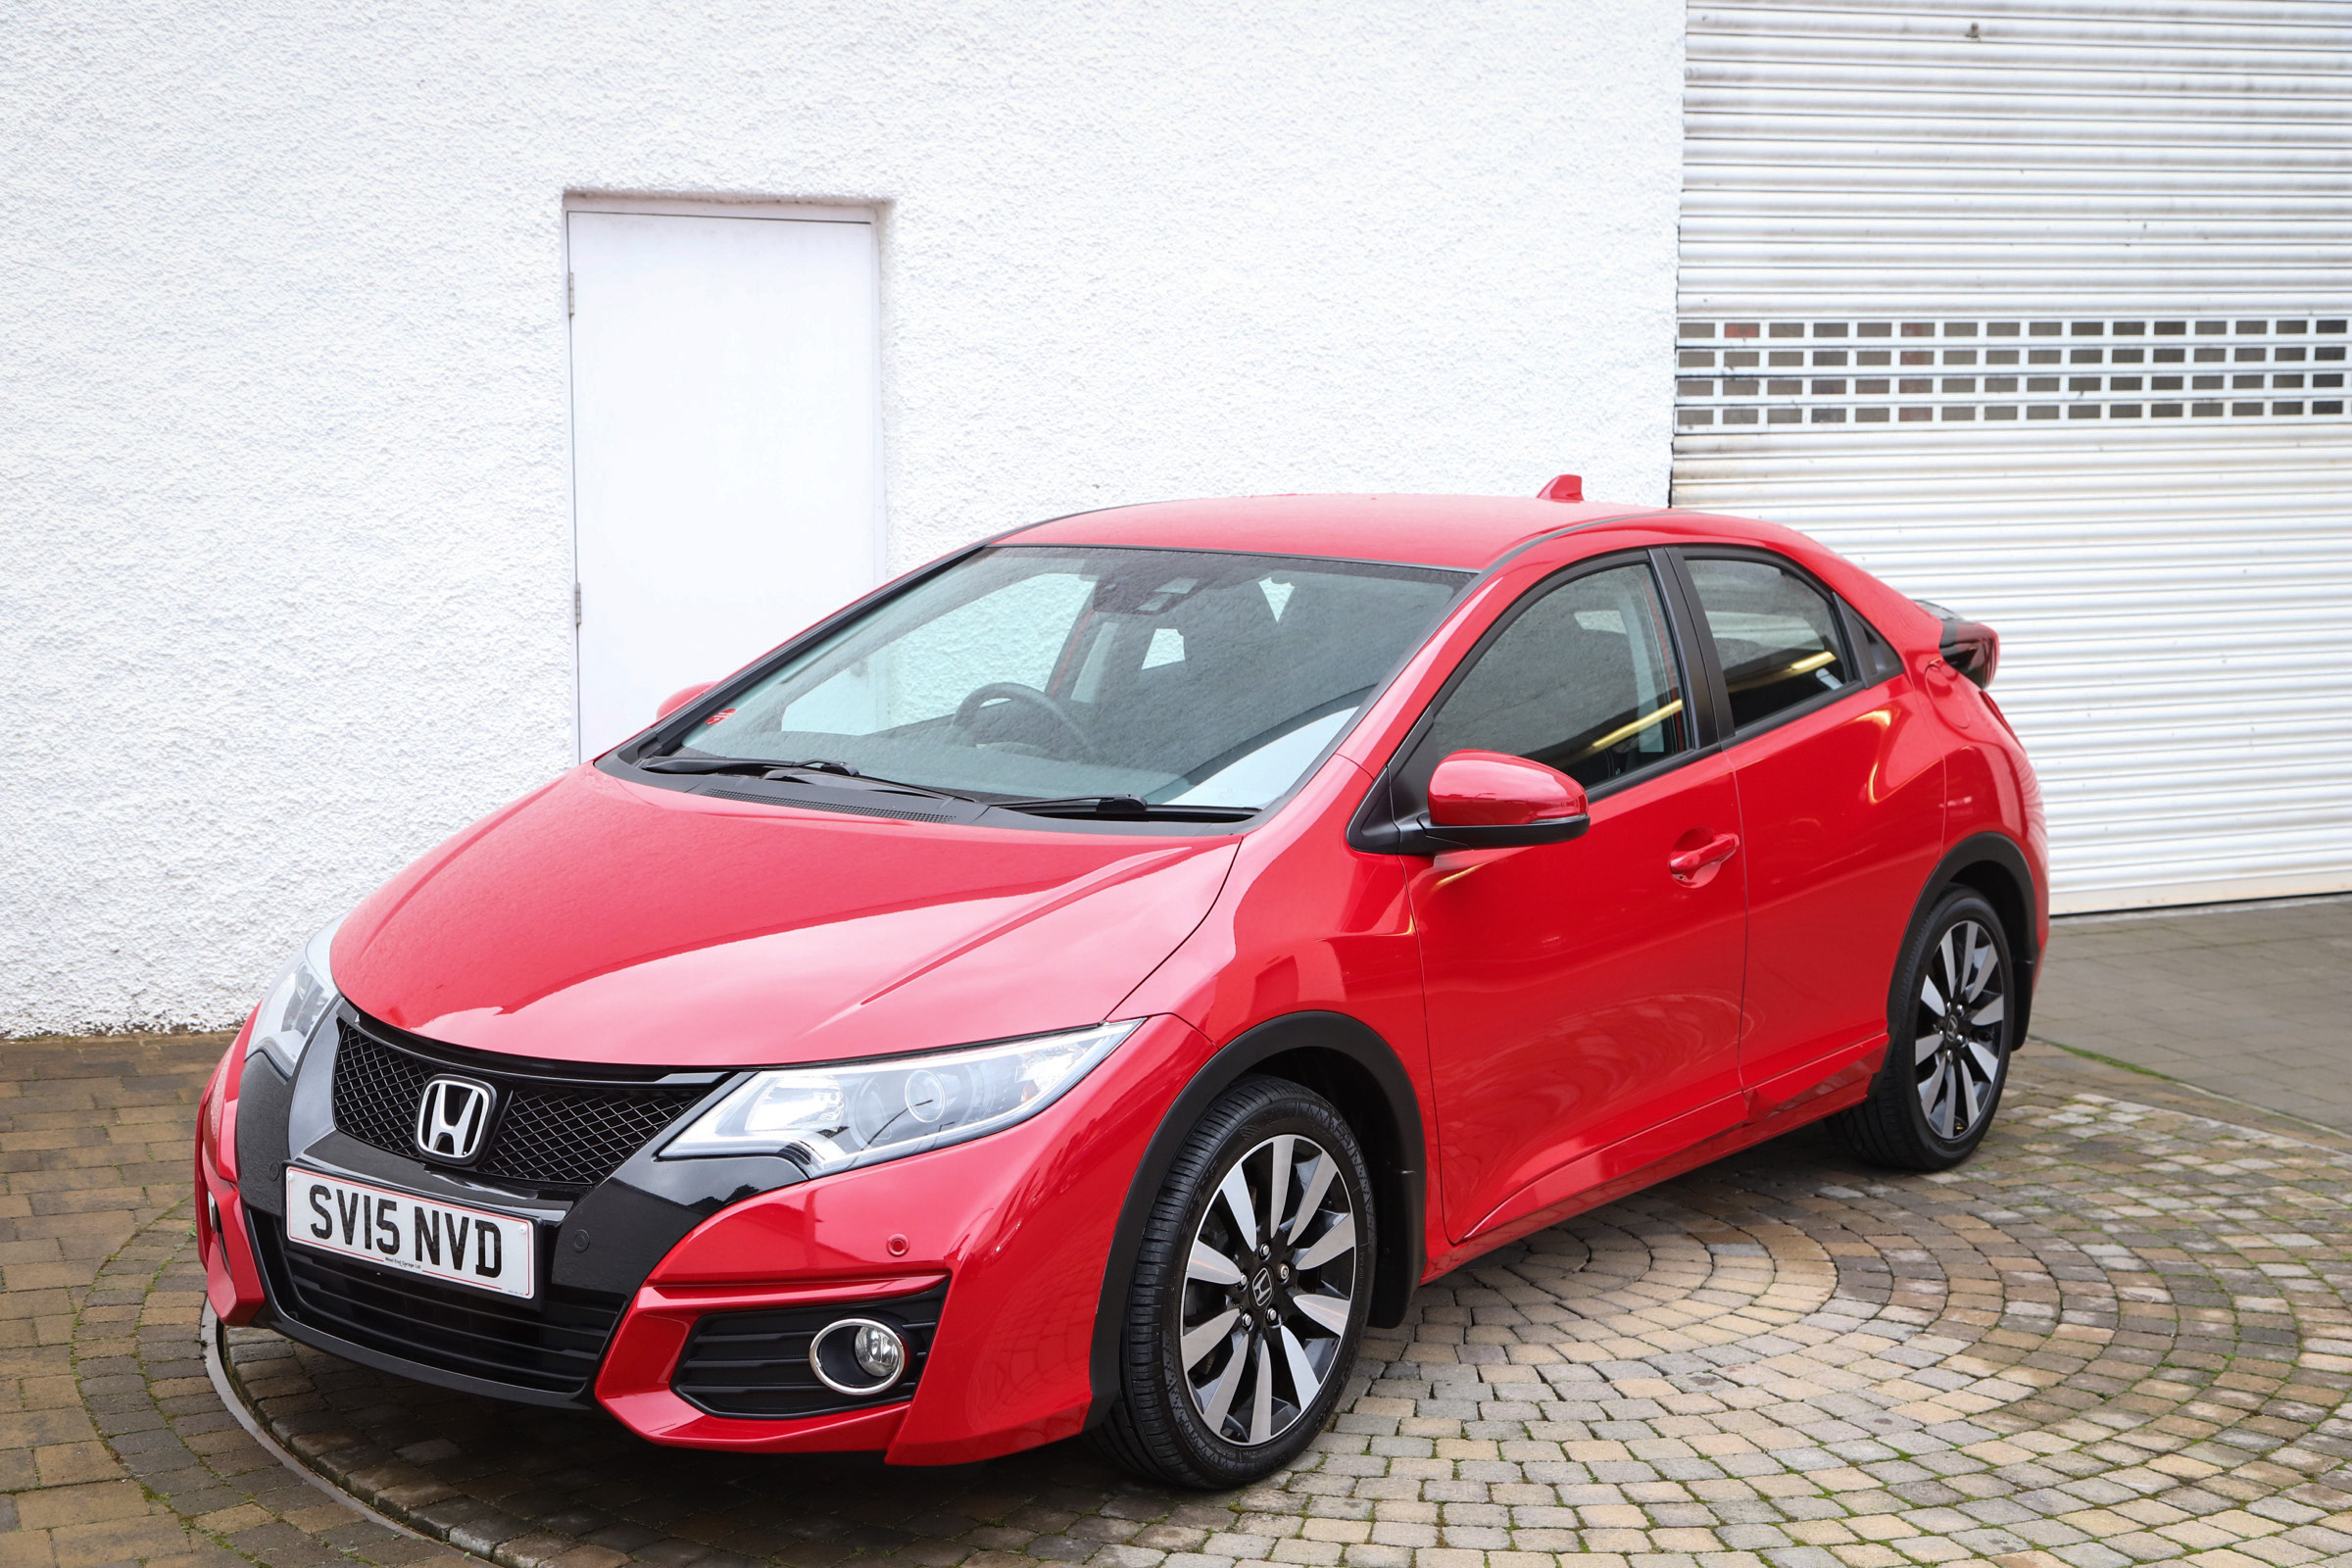 CIVIC 1.4 i-VTEC SE Plus 5dr